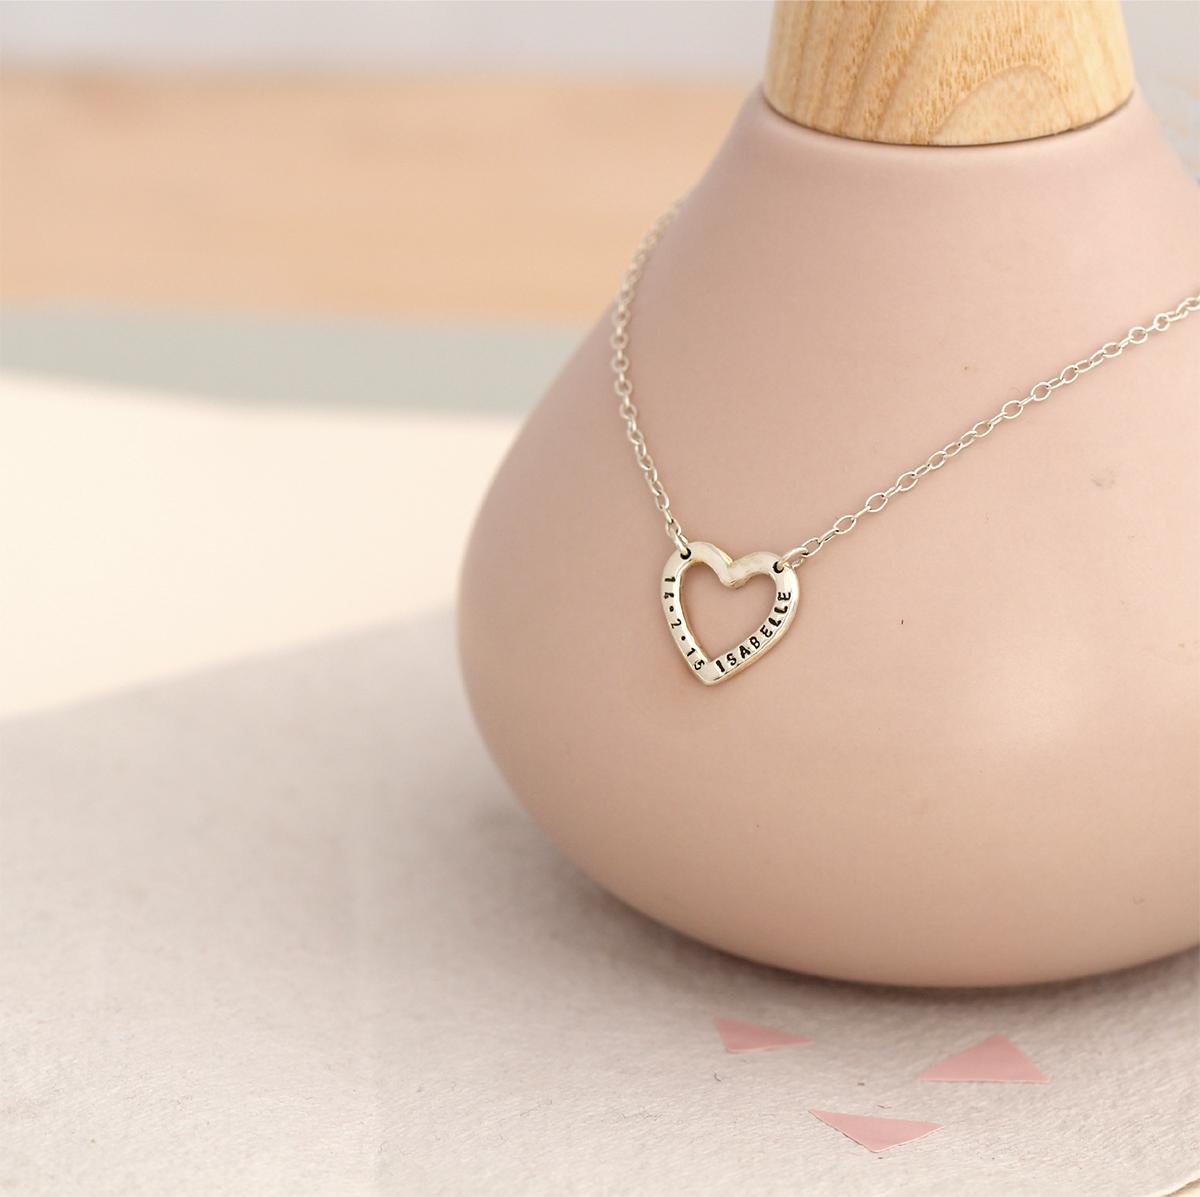 Personalised Posh Totty Designs Sweetheart Necklace